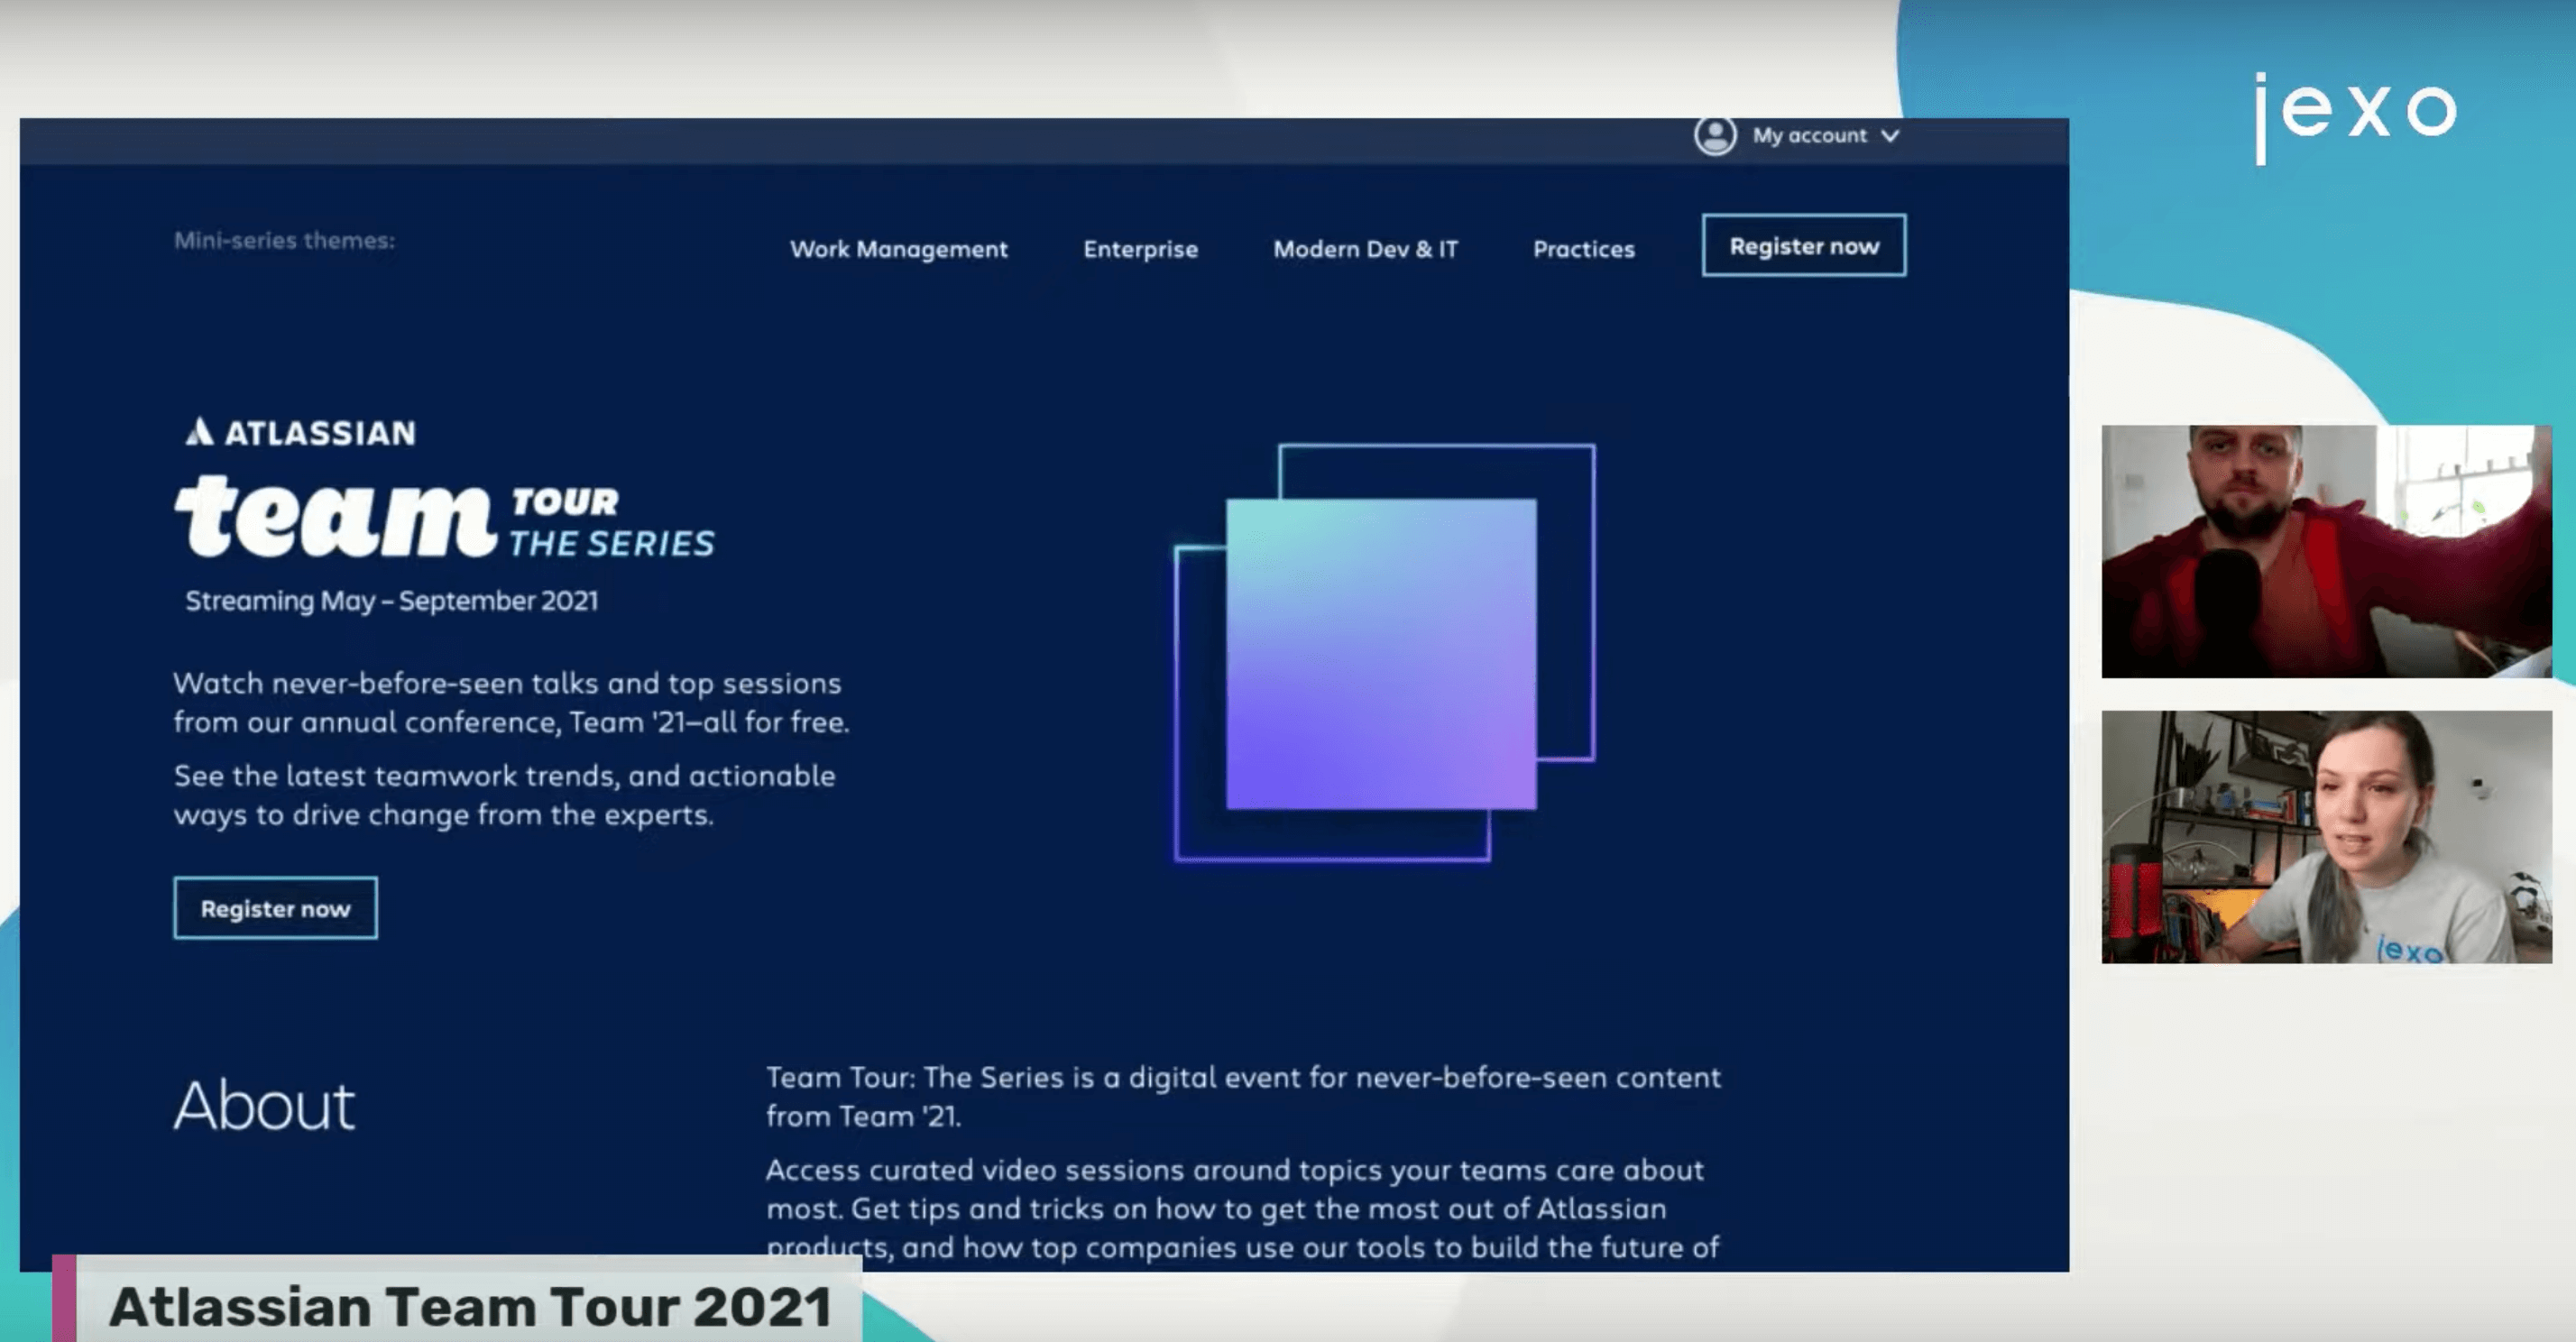 Monday coffee with Jexo: We discussed Atlassian Team Tour 2021